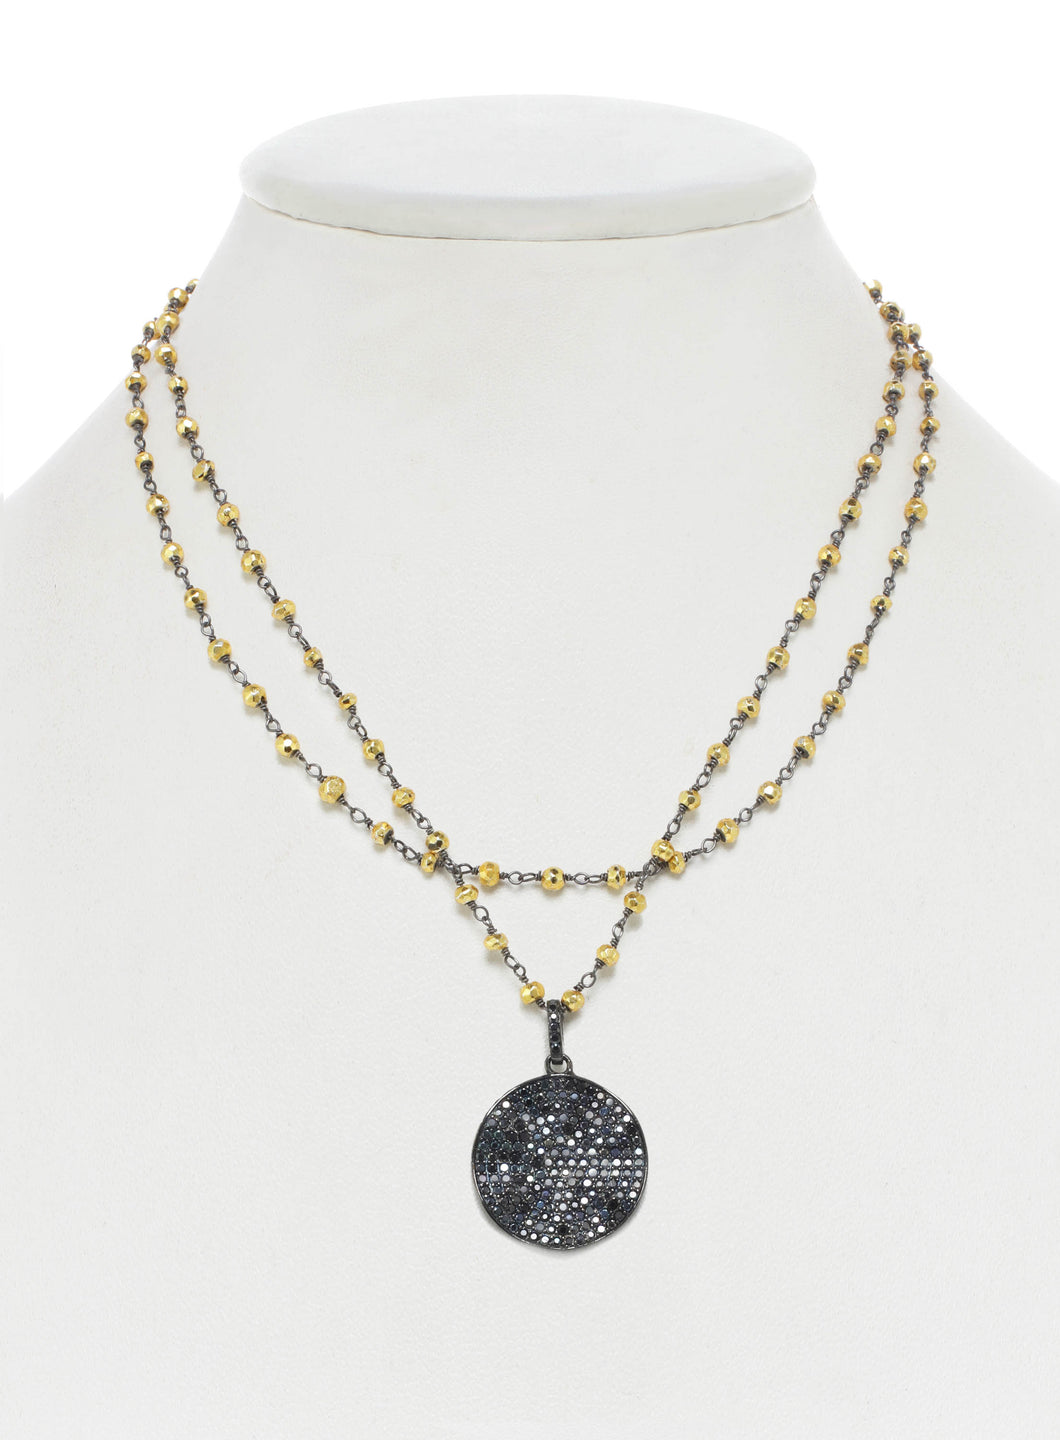 Gold Pyrite and Black Spinel Wavy Disc Necklace